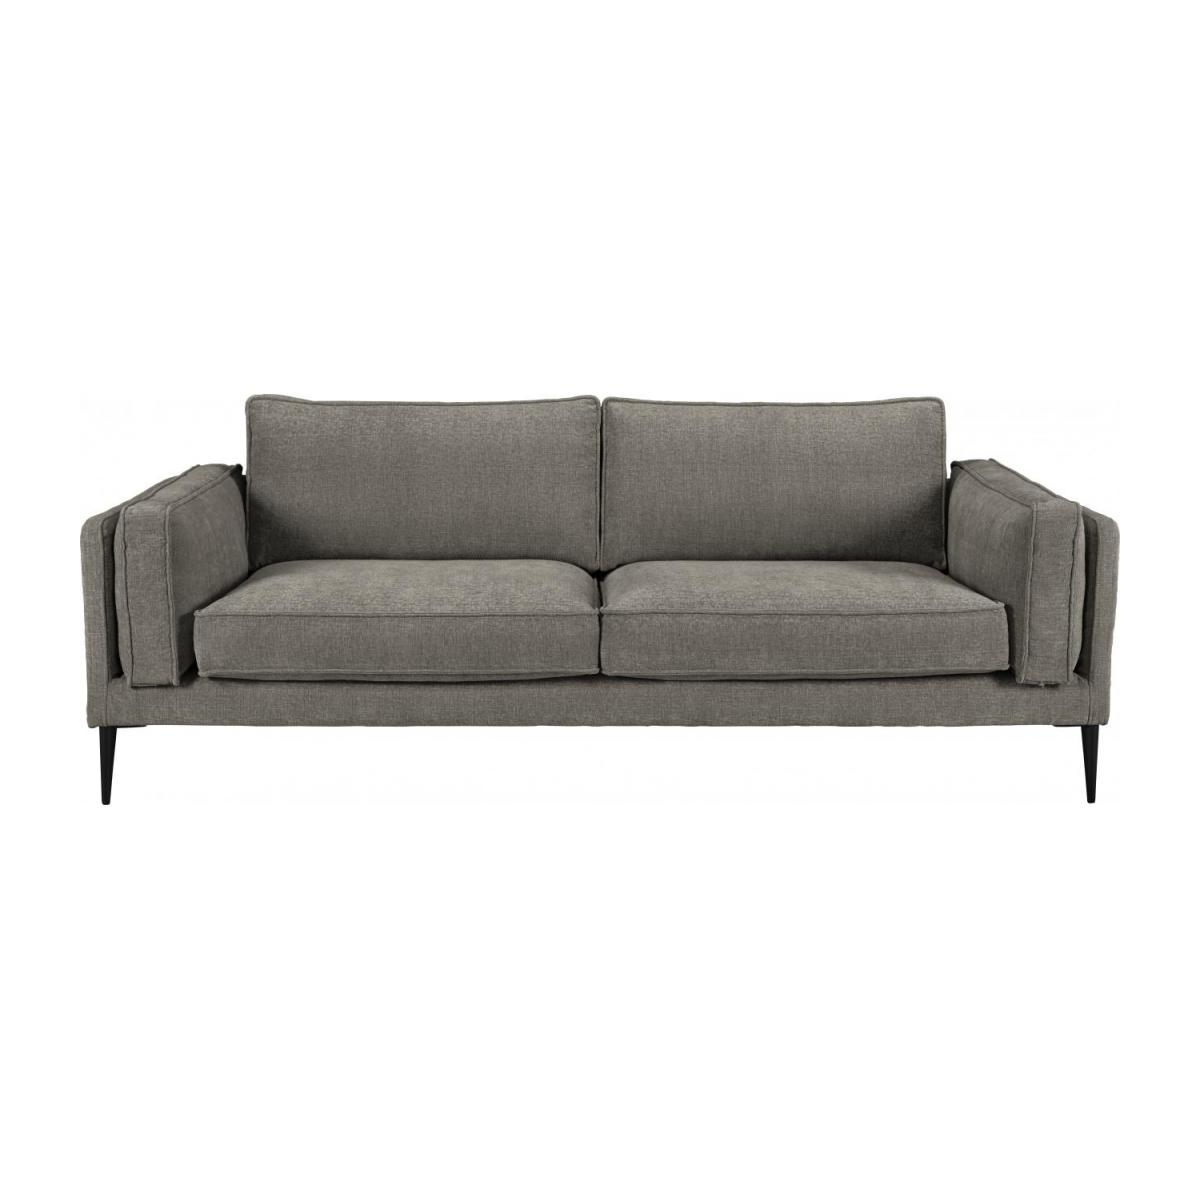 gil 3 sitzer sofa aus samt grau habitat. Black Bedroom Furniture Sets. Home Design Ideas